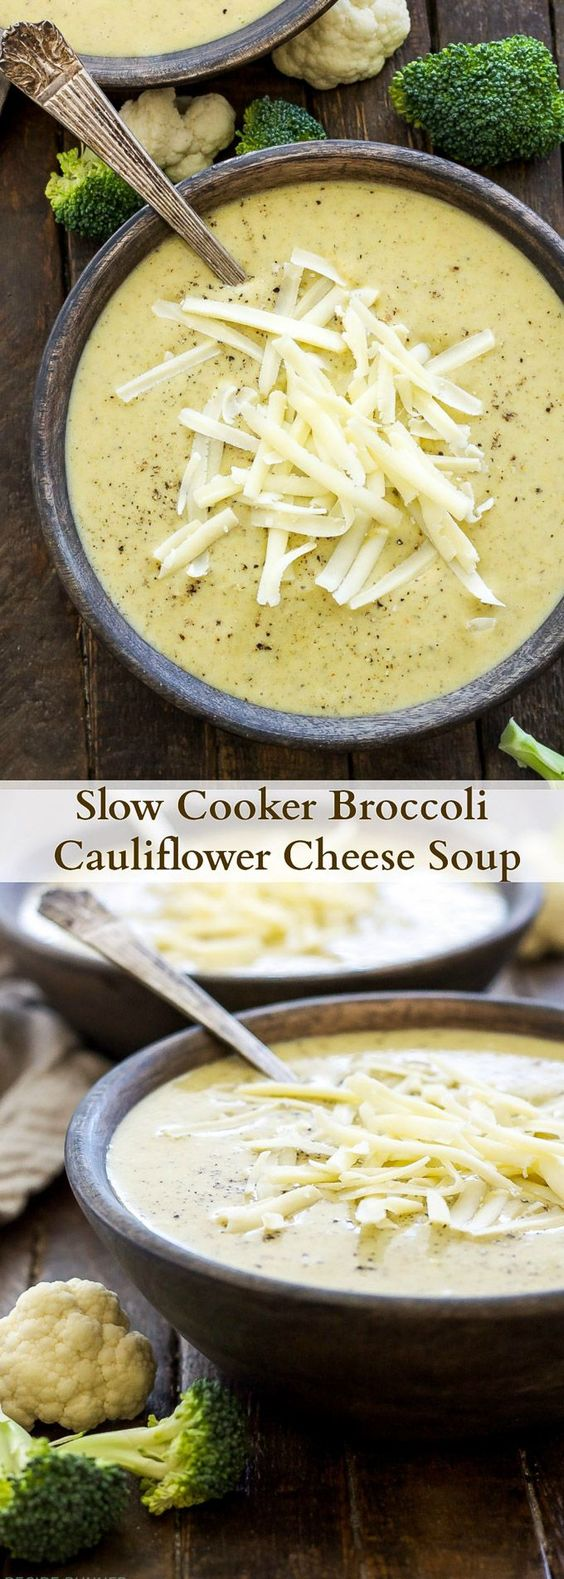 SLOW COOKER BROCCOLI CAULIFLOWER CHEESE SOUP #slowcooker #broccoli #cauliflower #cheese #cauliflowersoup #broccolisoup #soup #souprecipes #healthysouprecipes